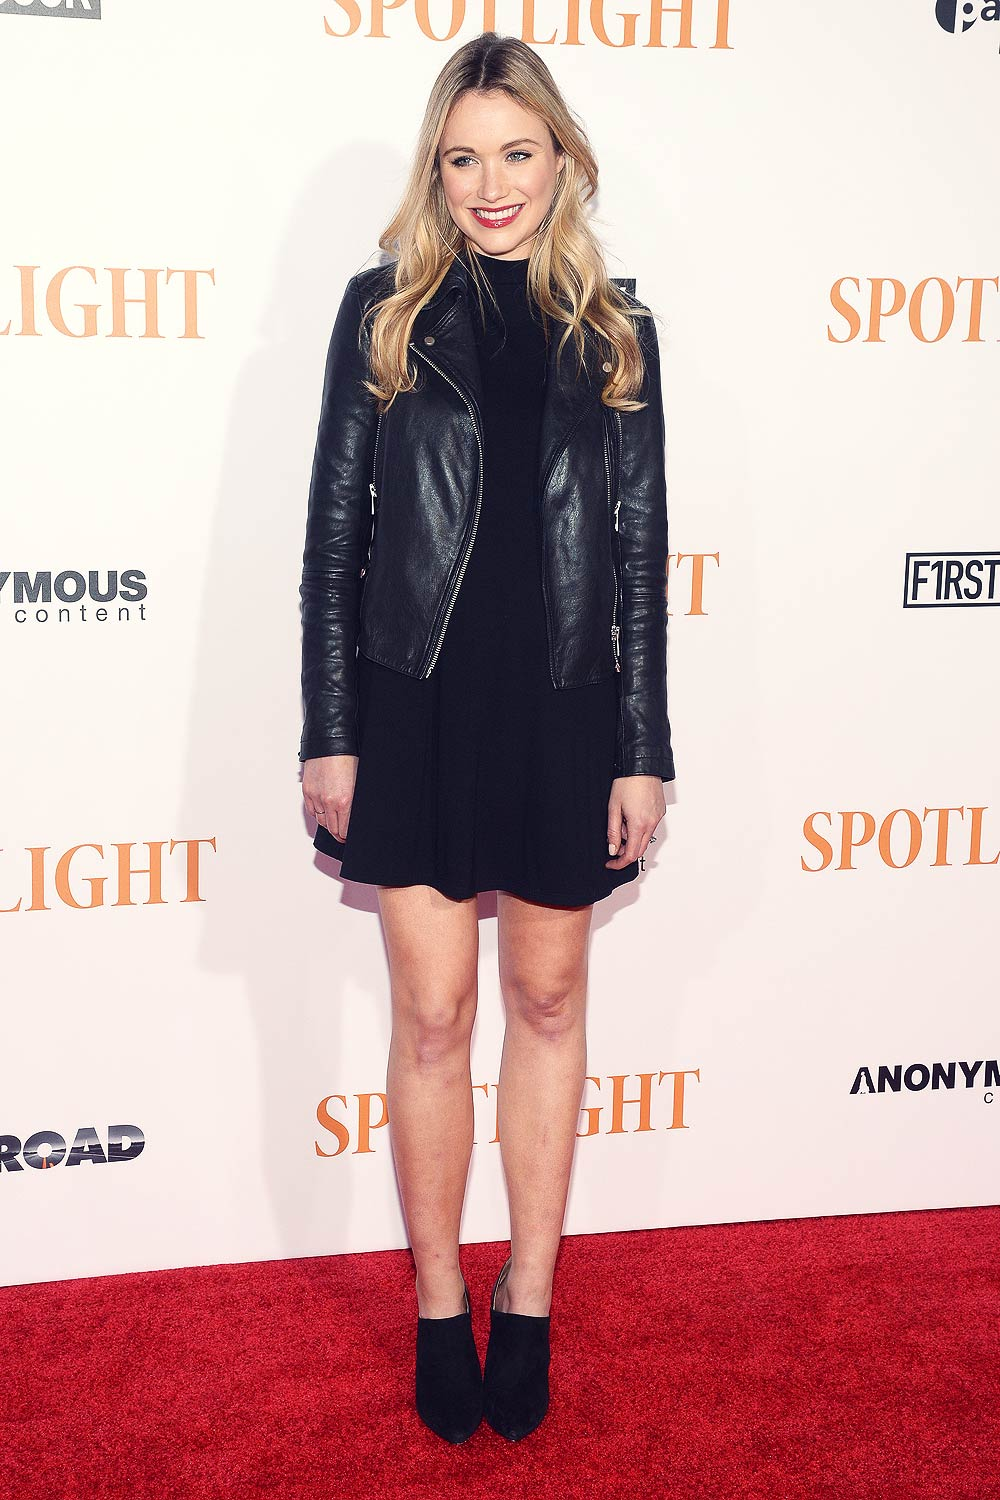 Katrina Bowden attends Spotlight New York premiere